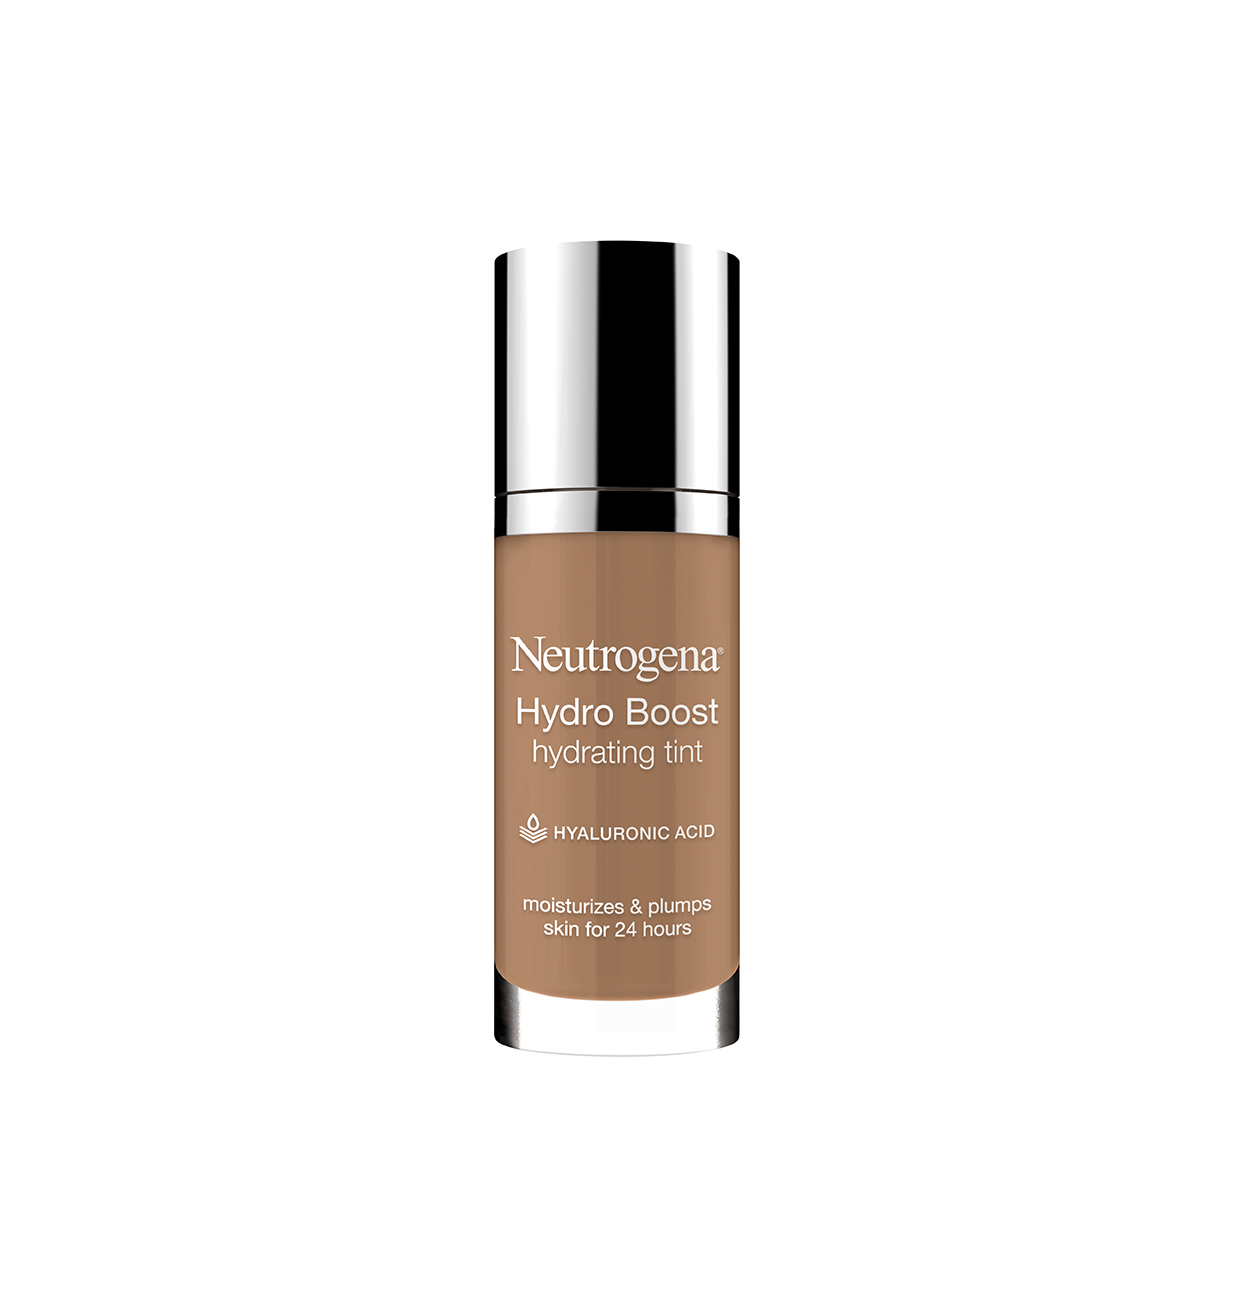 The Best Drugstore Foundation | Real Simple